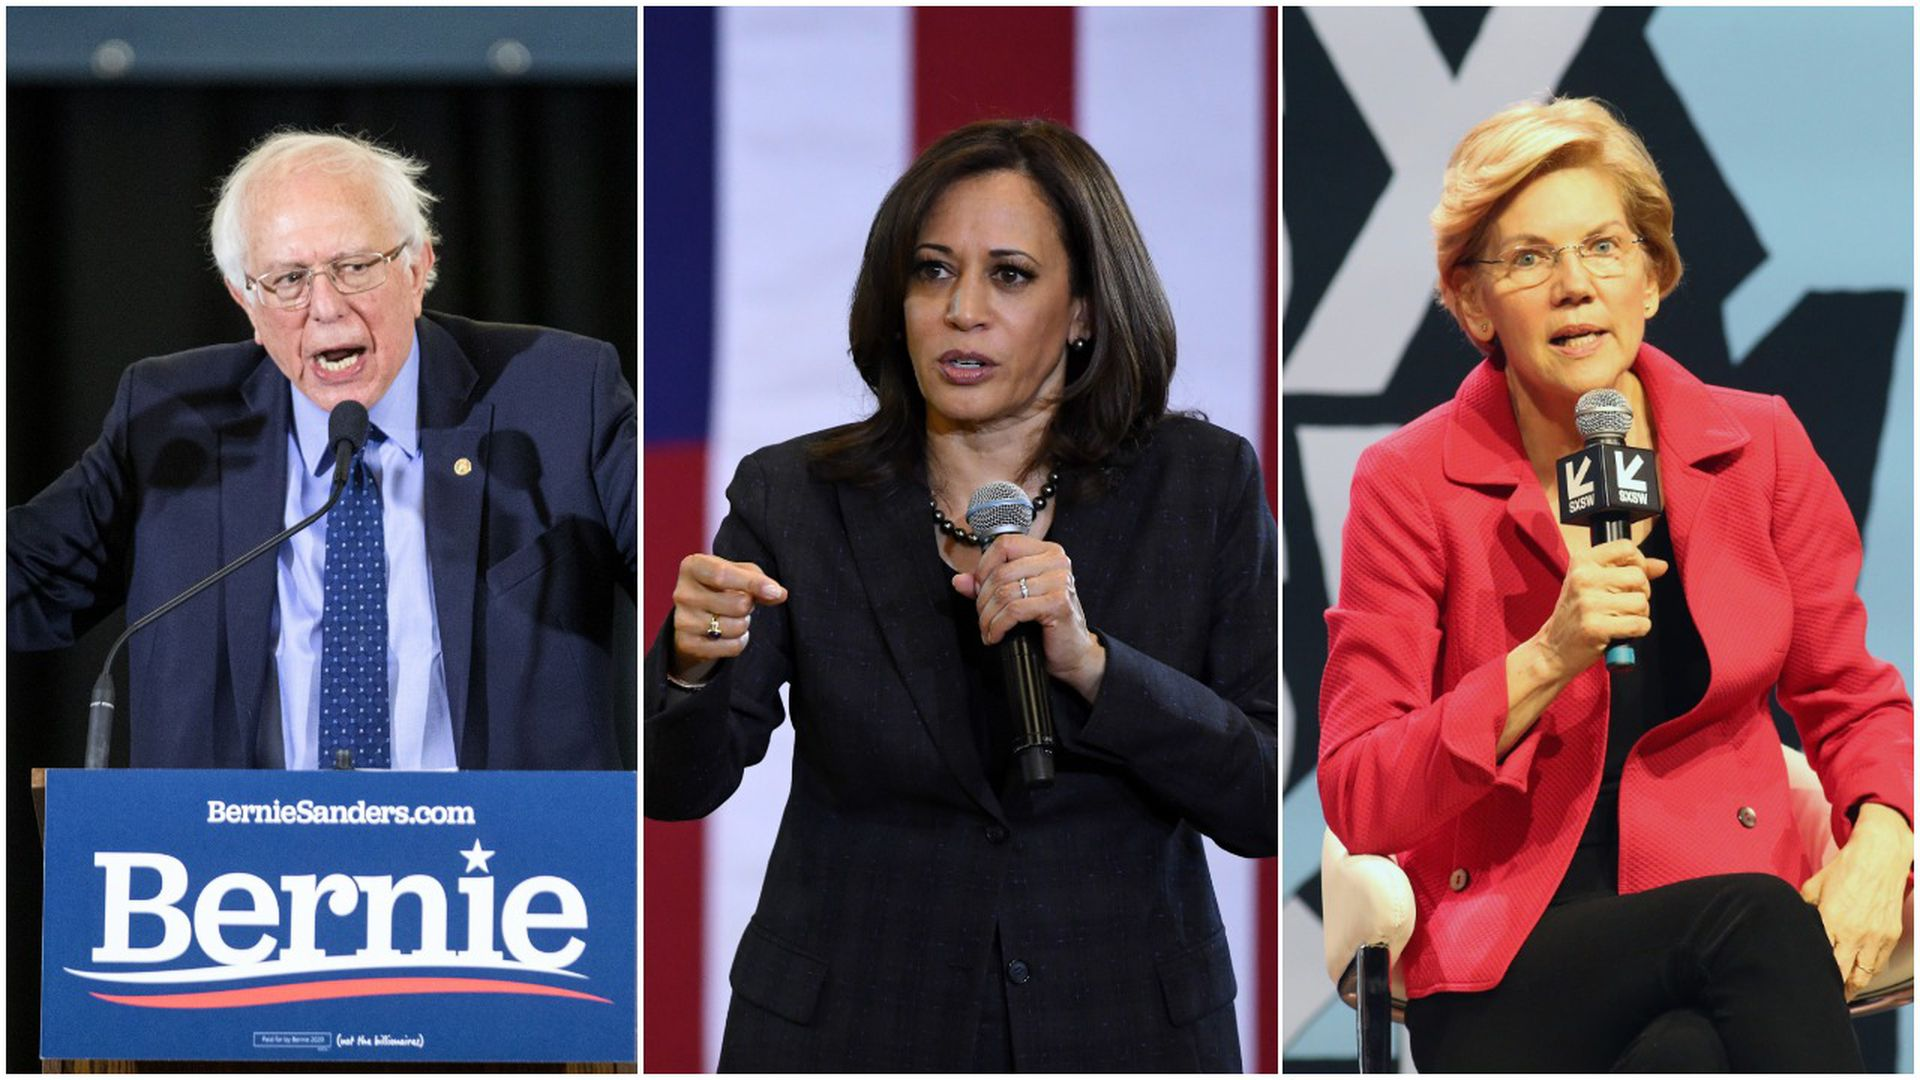 Bernie Sanders, Kamala Harris, Elizabeth Warren pictures in a collage